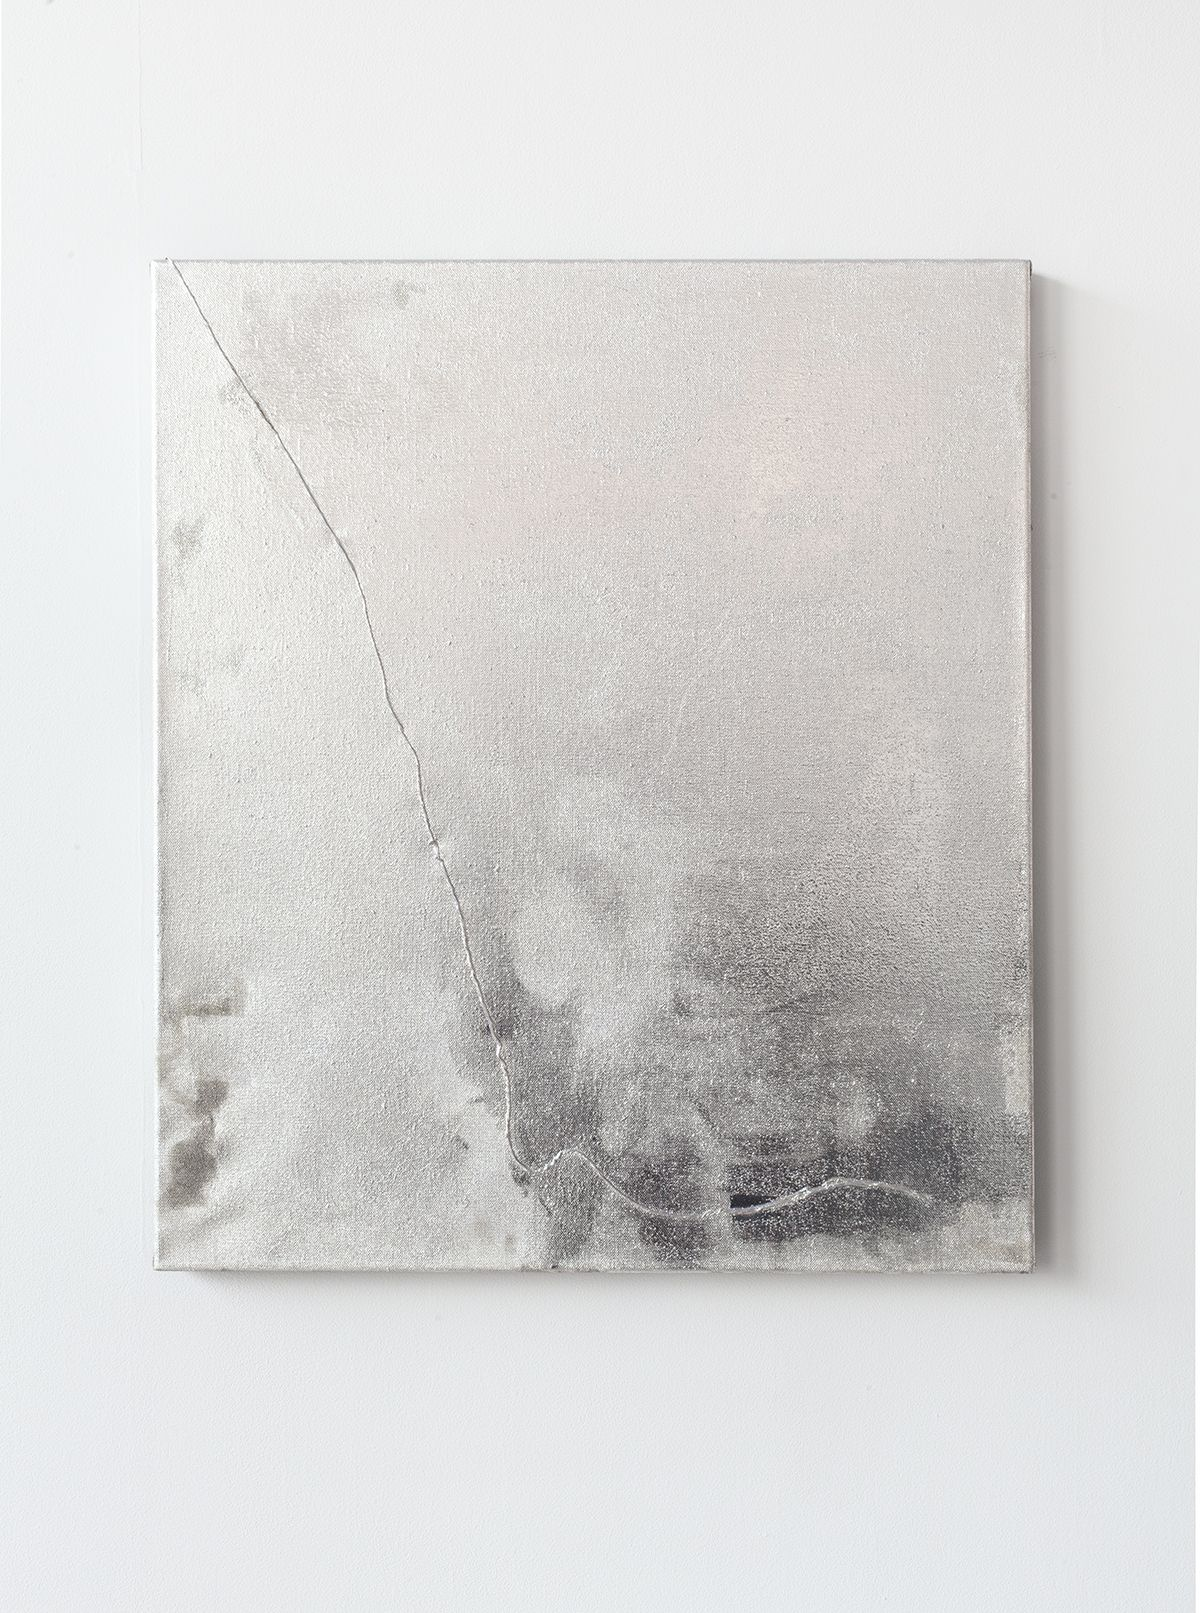 Mathieu Malouf  Untitled, 2013  Gesso, human hairs, and electro silver plating process on linen  30 x 24 inches (76.2 x 61 cm)